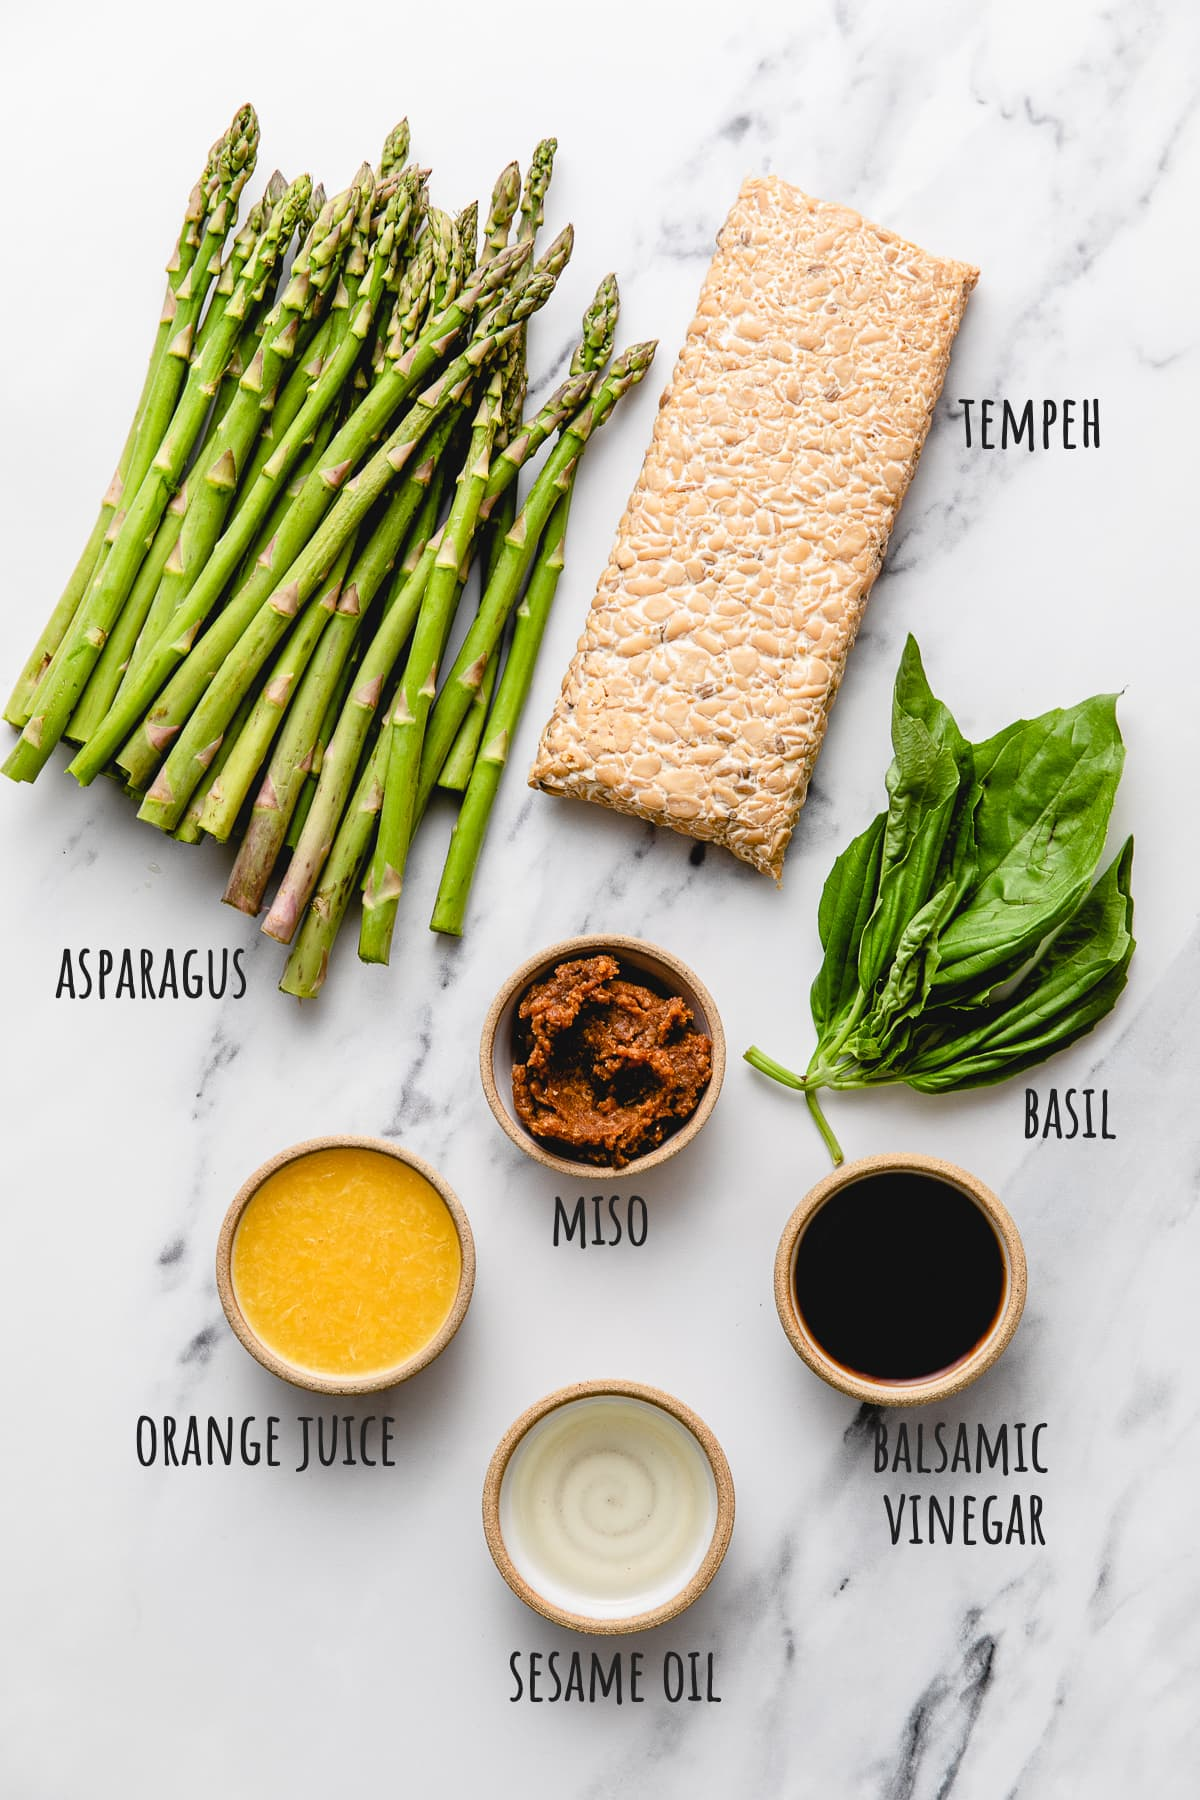 top down view of ingredients to make orange tempeh and asparagus recipe.